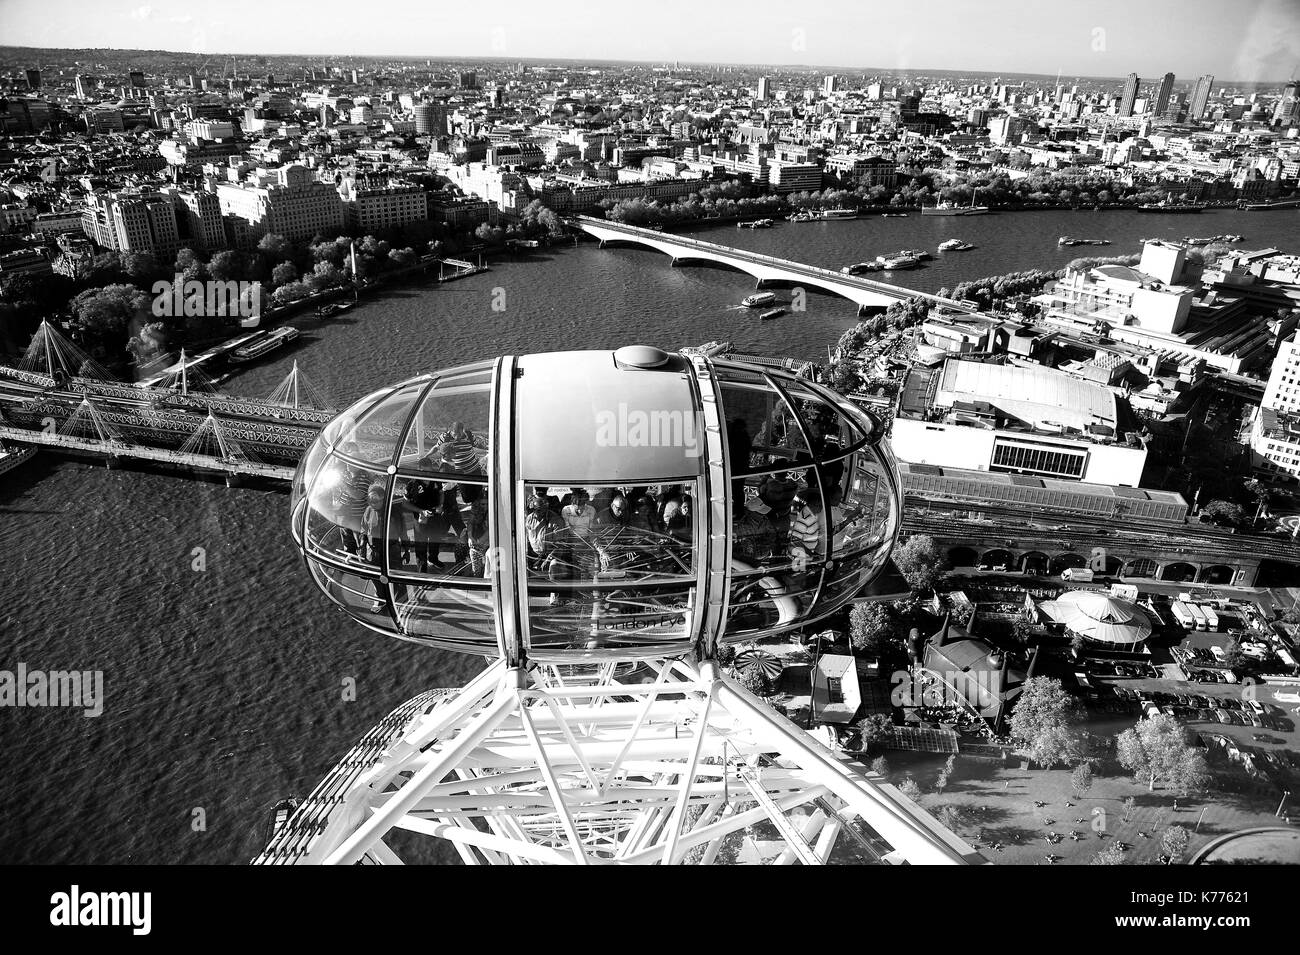 The River Thames and London Eye viewed from the London Eye. - Stock Image